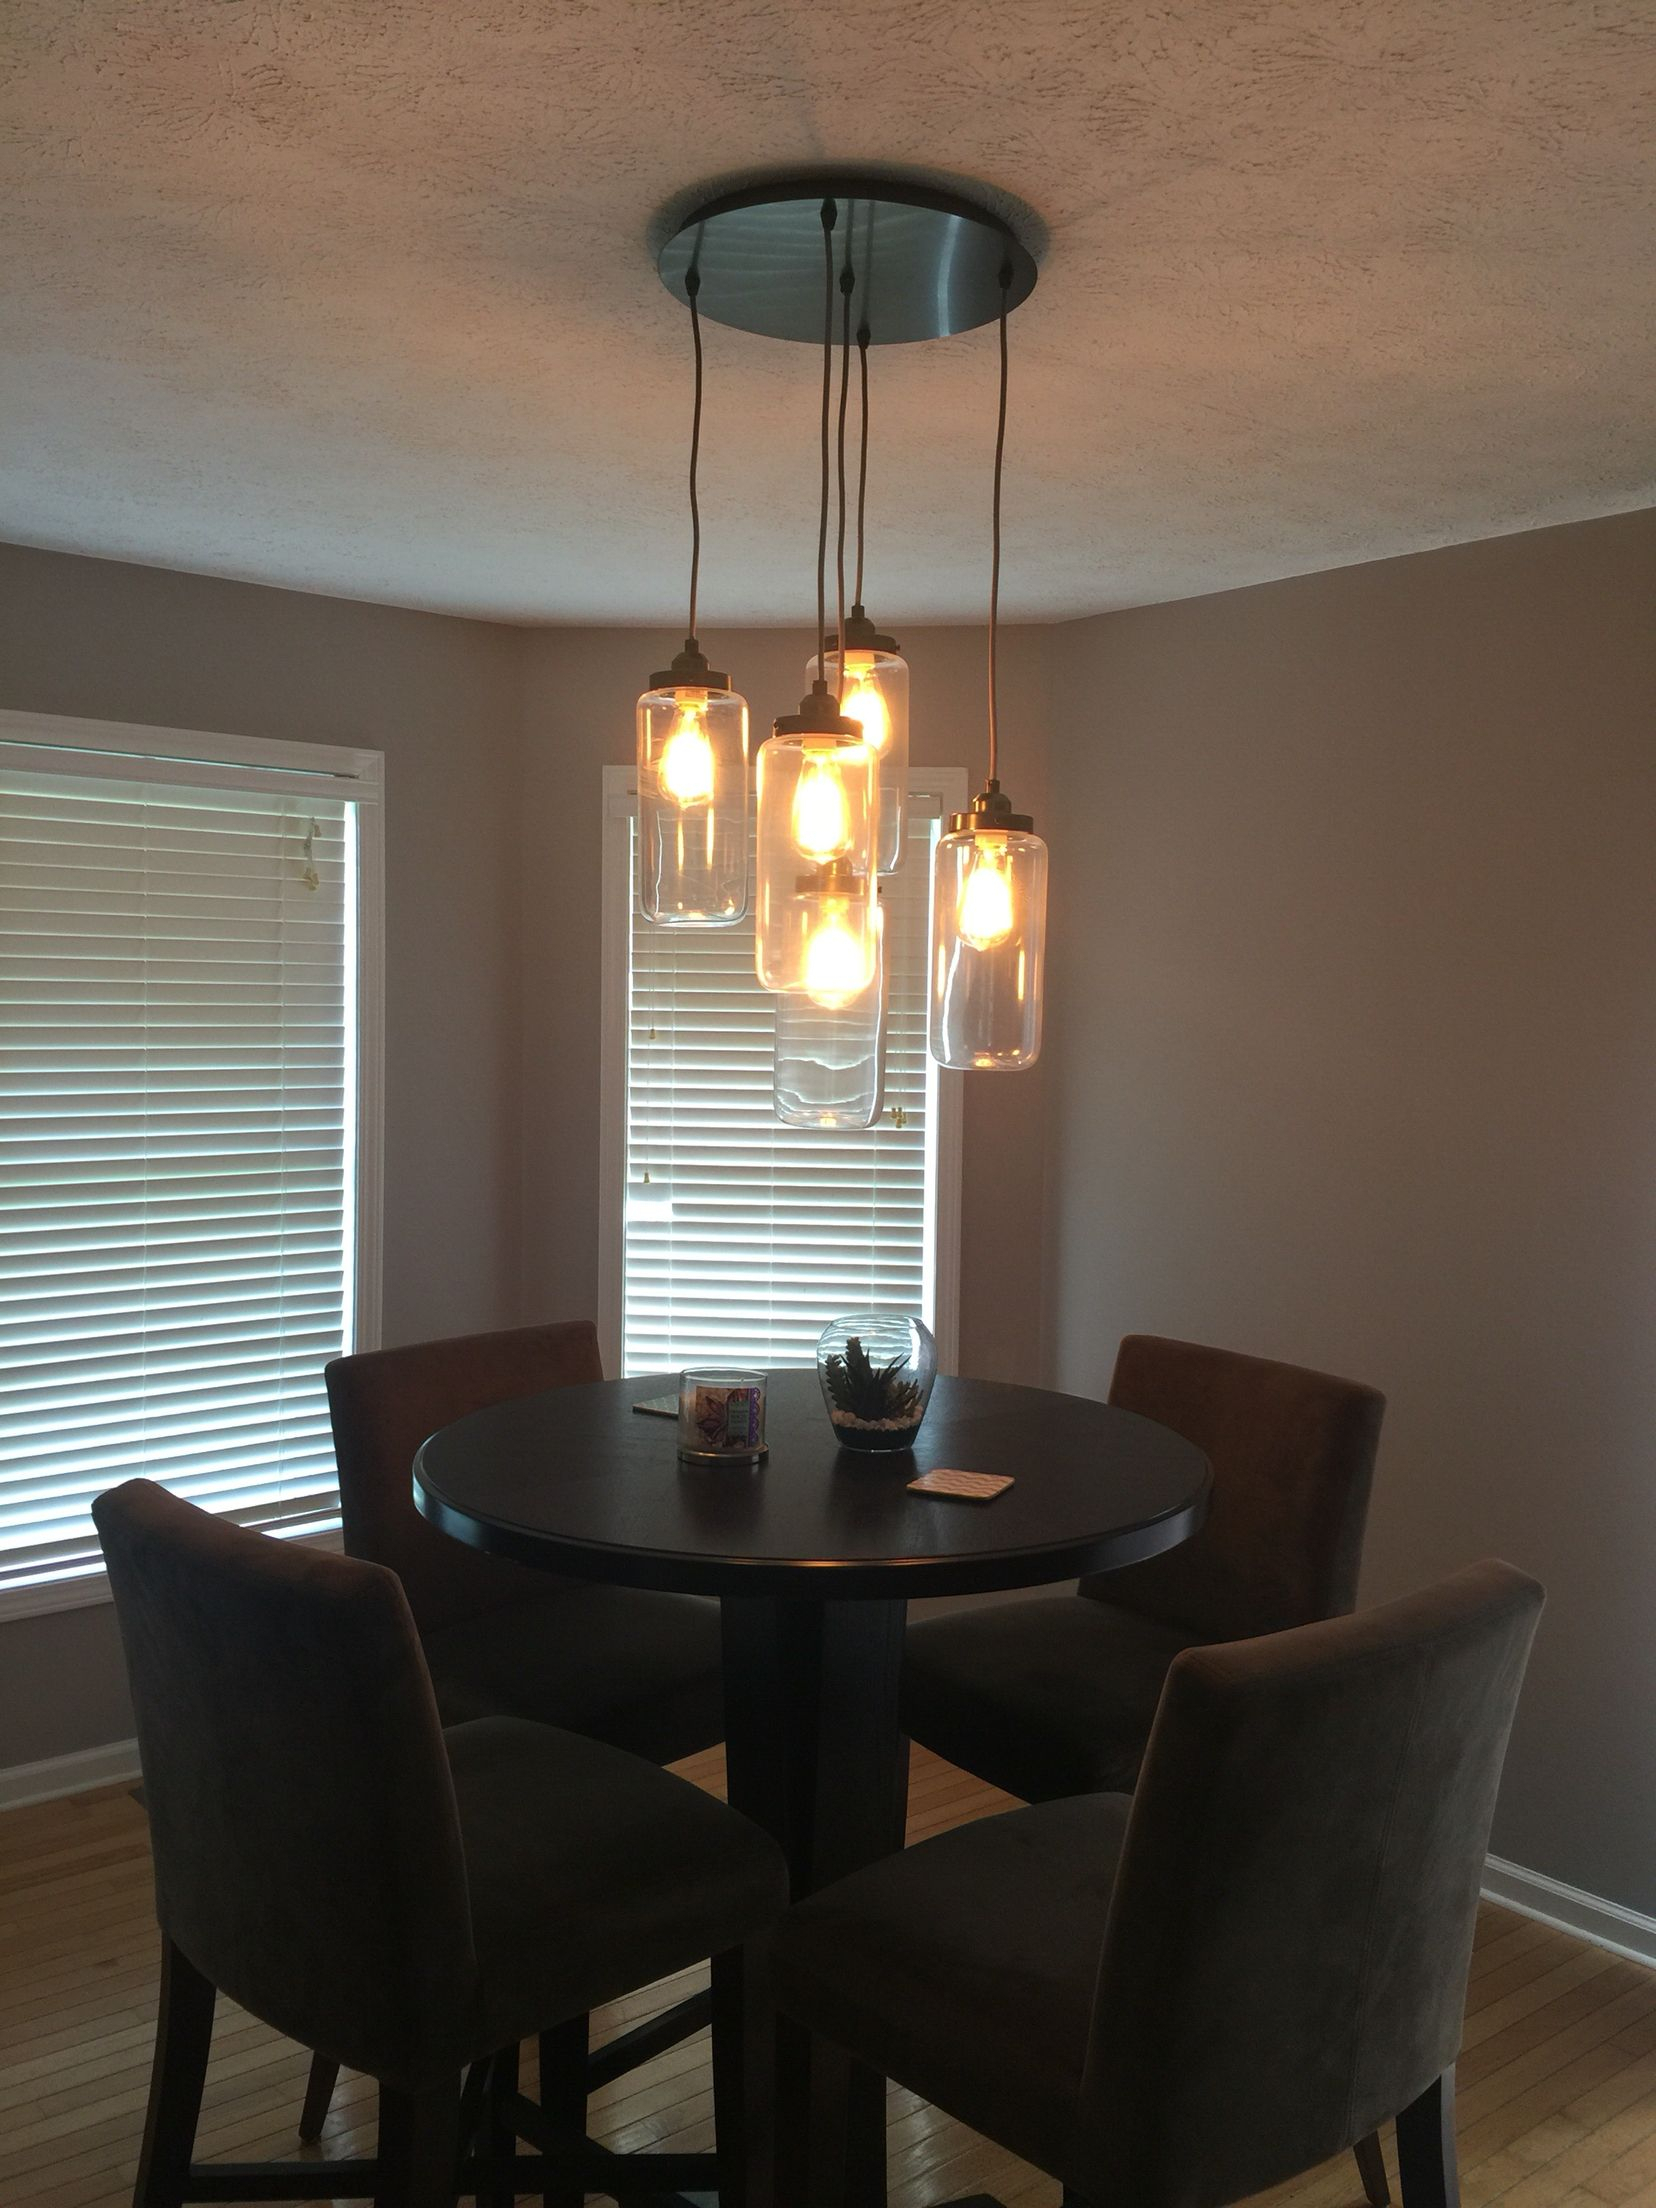 West Elm Lighting | West Elm Lighting, Dining Table, Home Intended For Recent Edmondson Dining Tables (View 2 of 15)